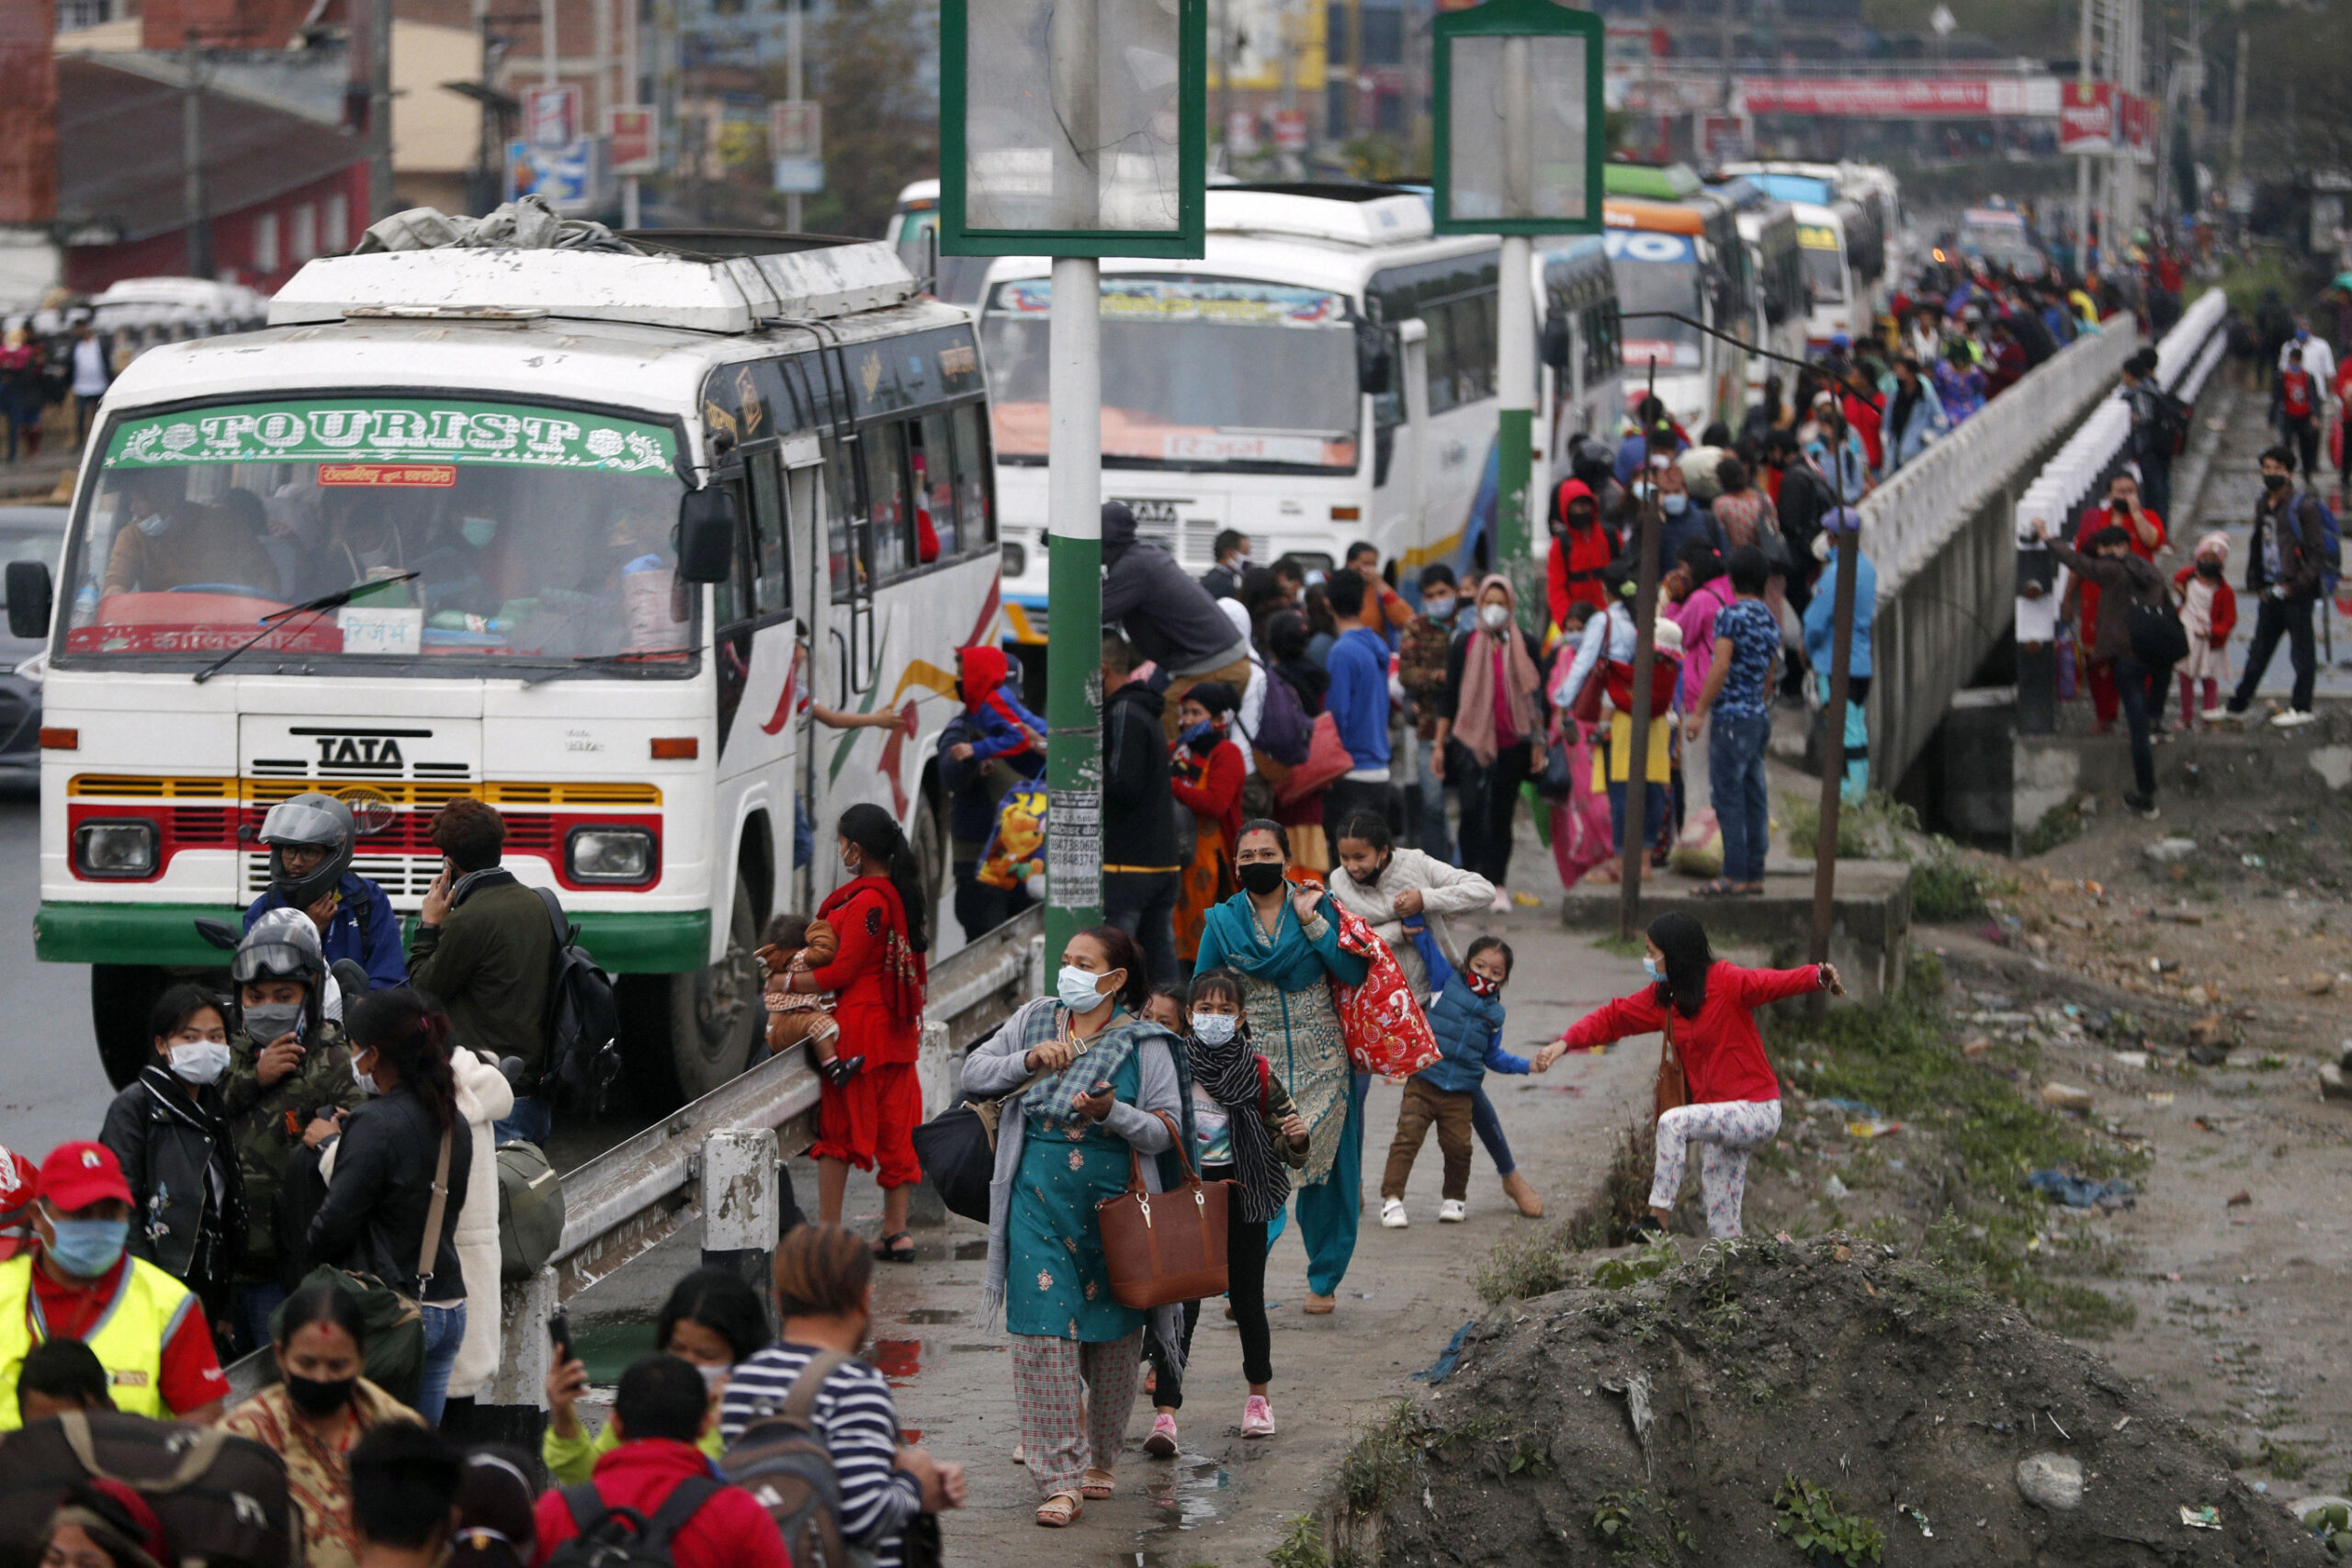 Long distance public transport operated, such is the new fare